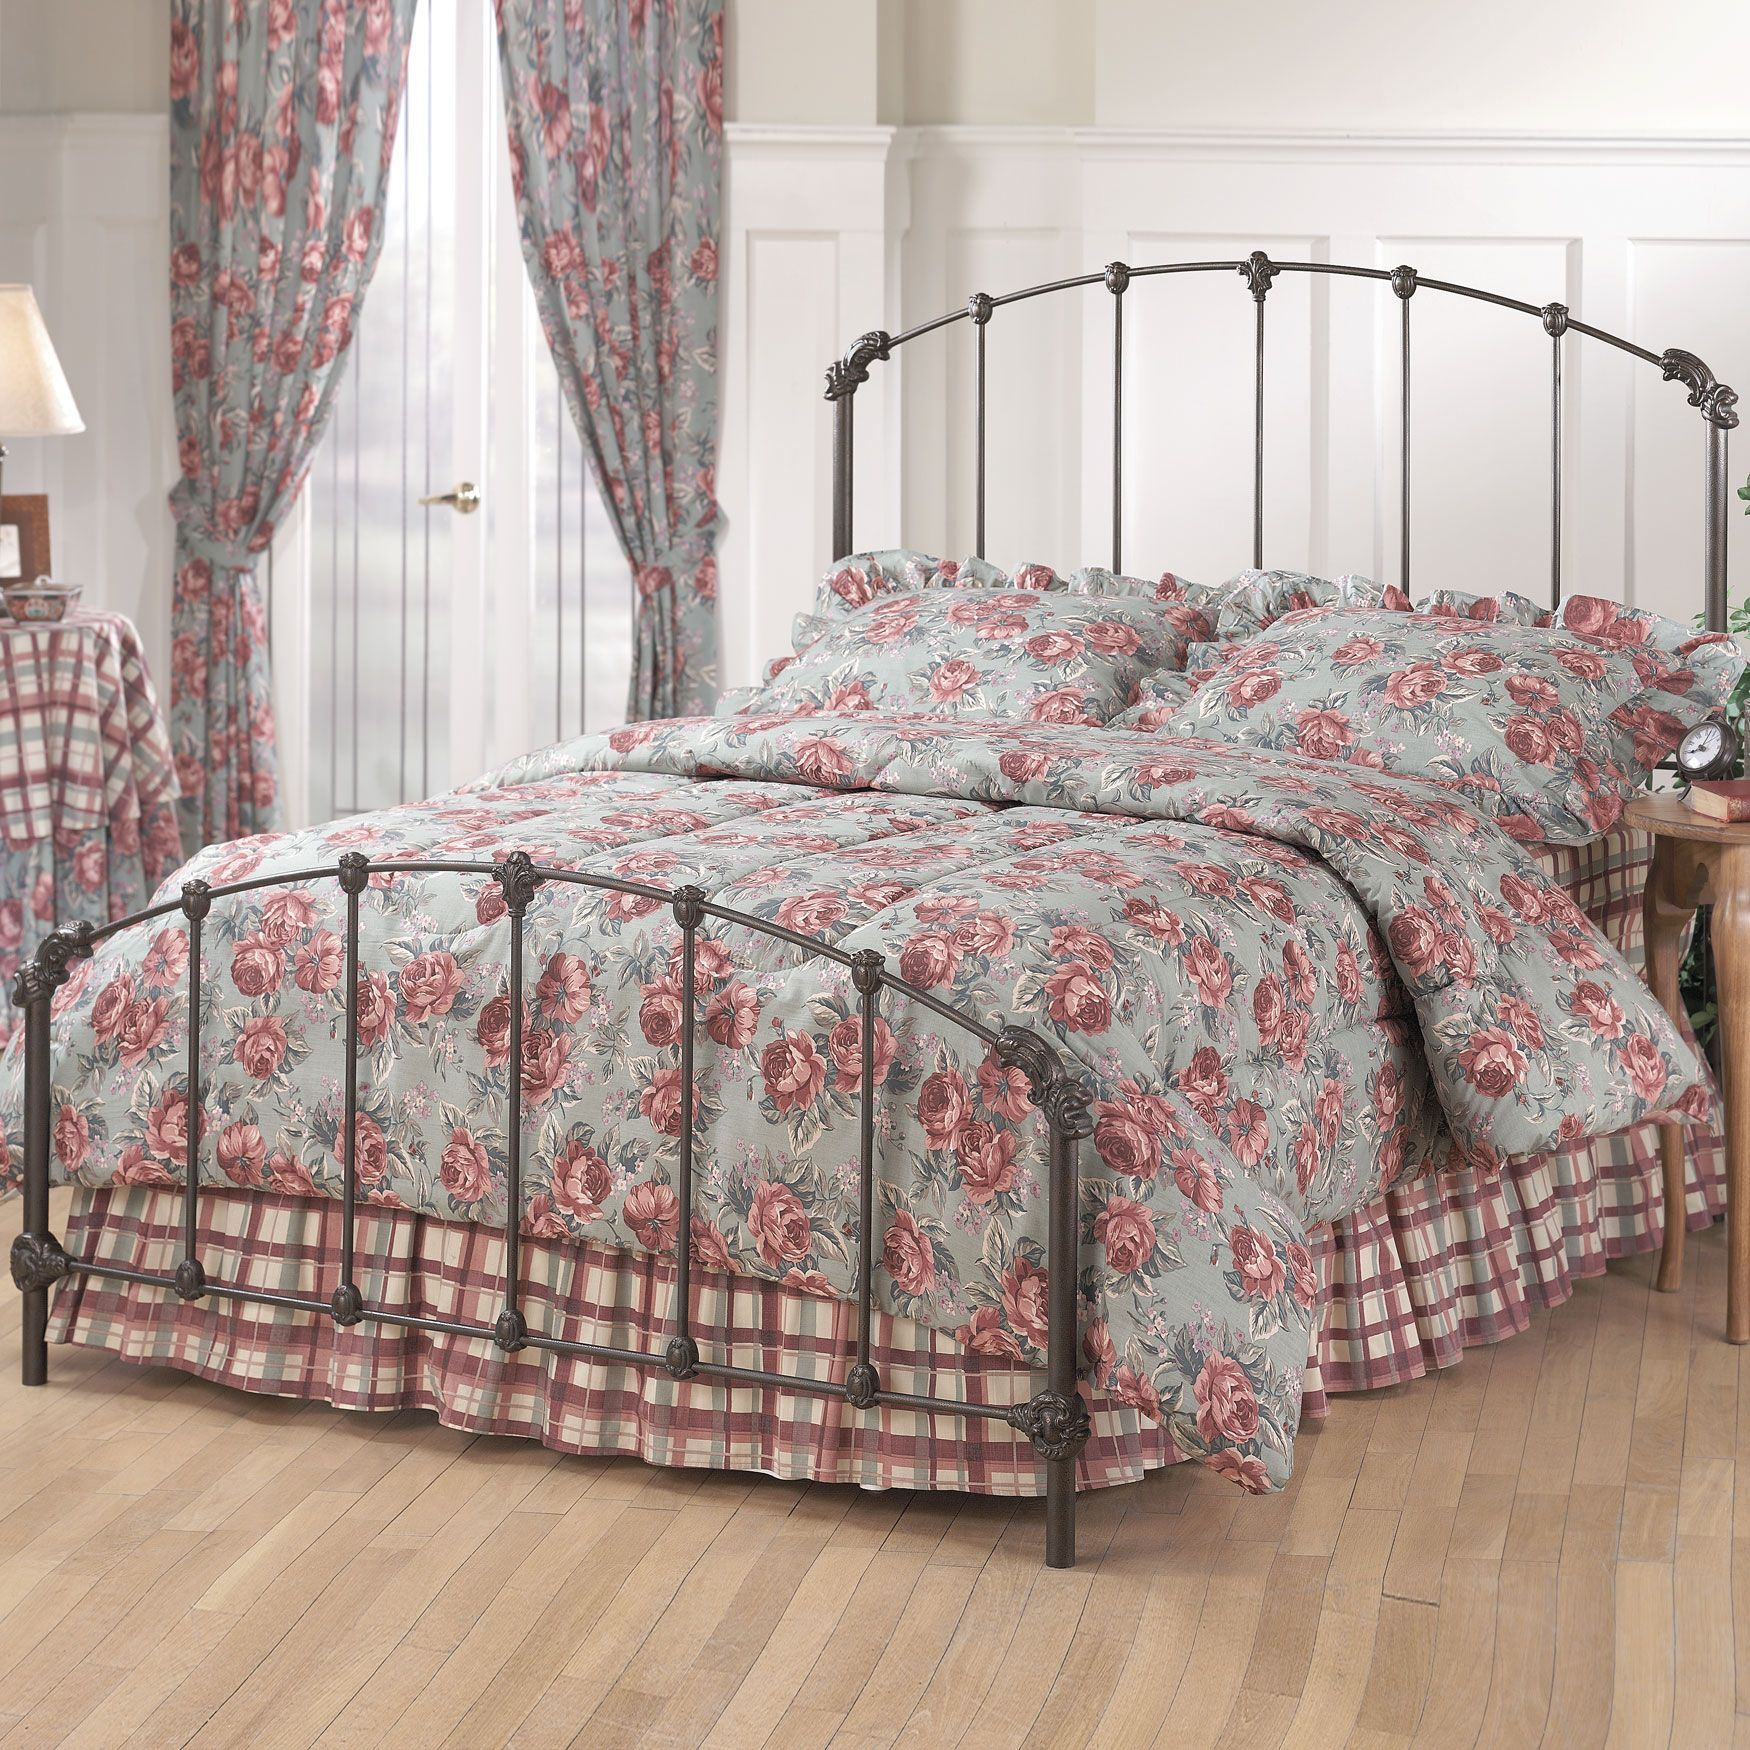 Full Bed with Bed Frame, 76'x56'x56',